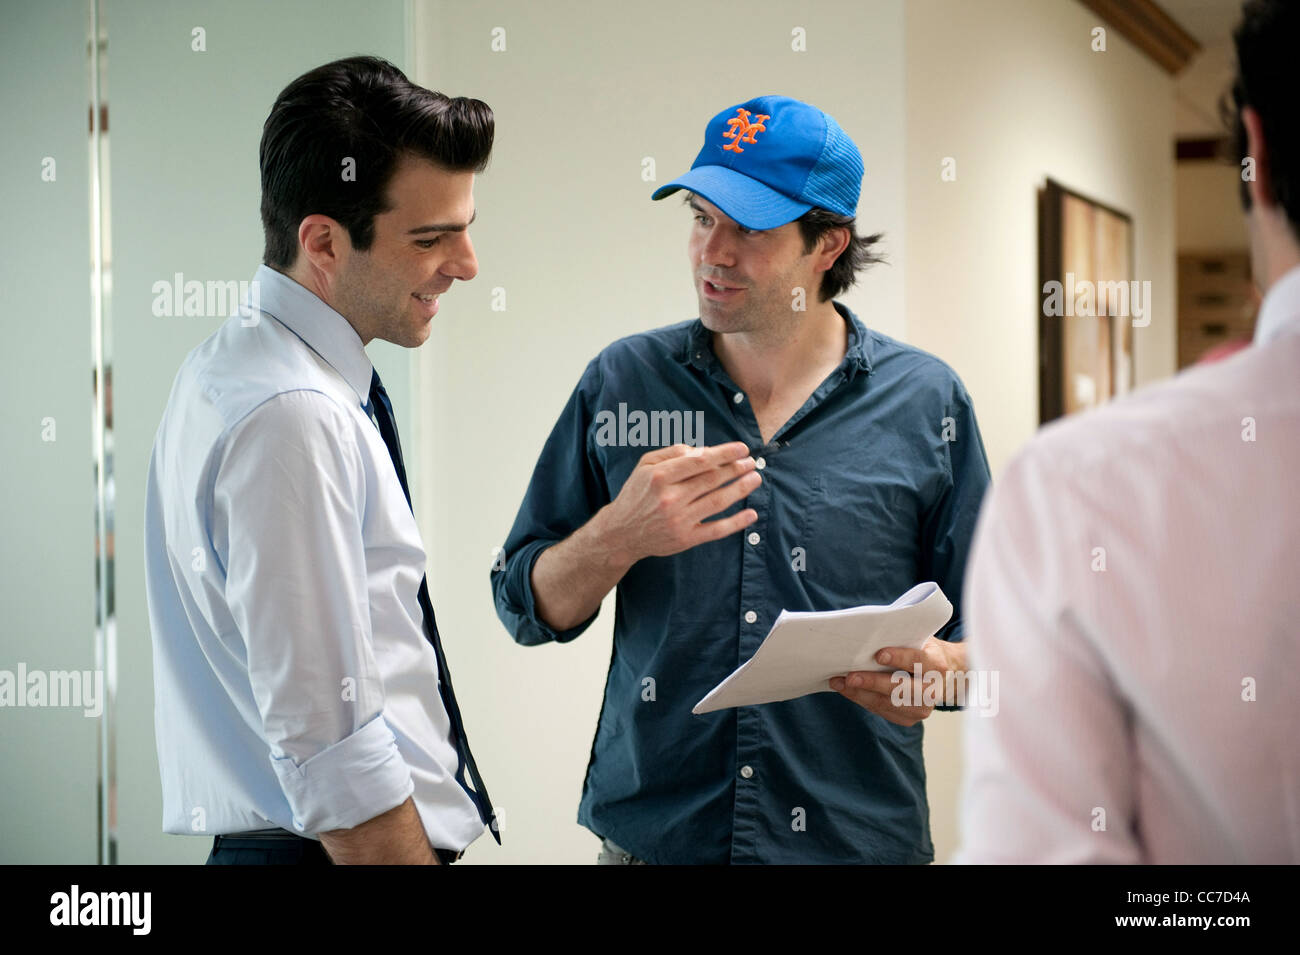 ZACHARY QUINTO & J.C. CHANDOR MARGIN CALL (2011) - Stock Image